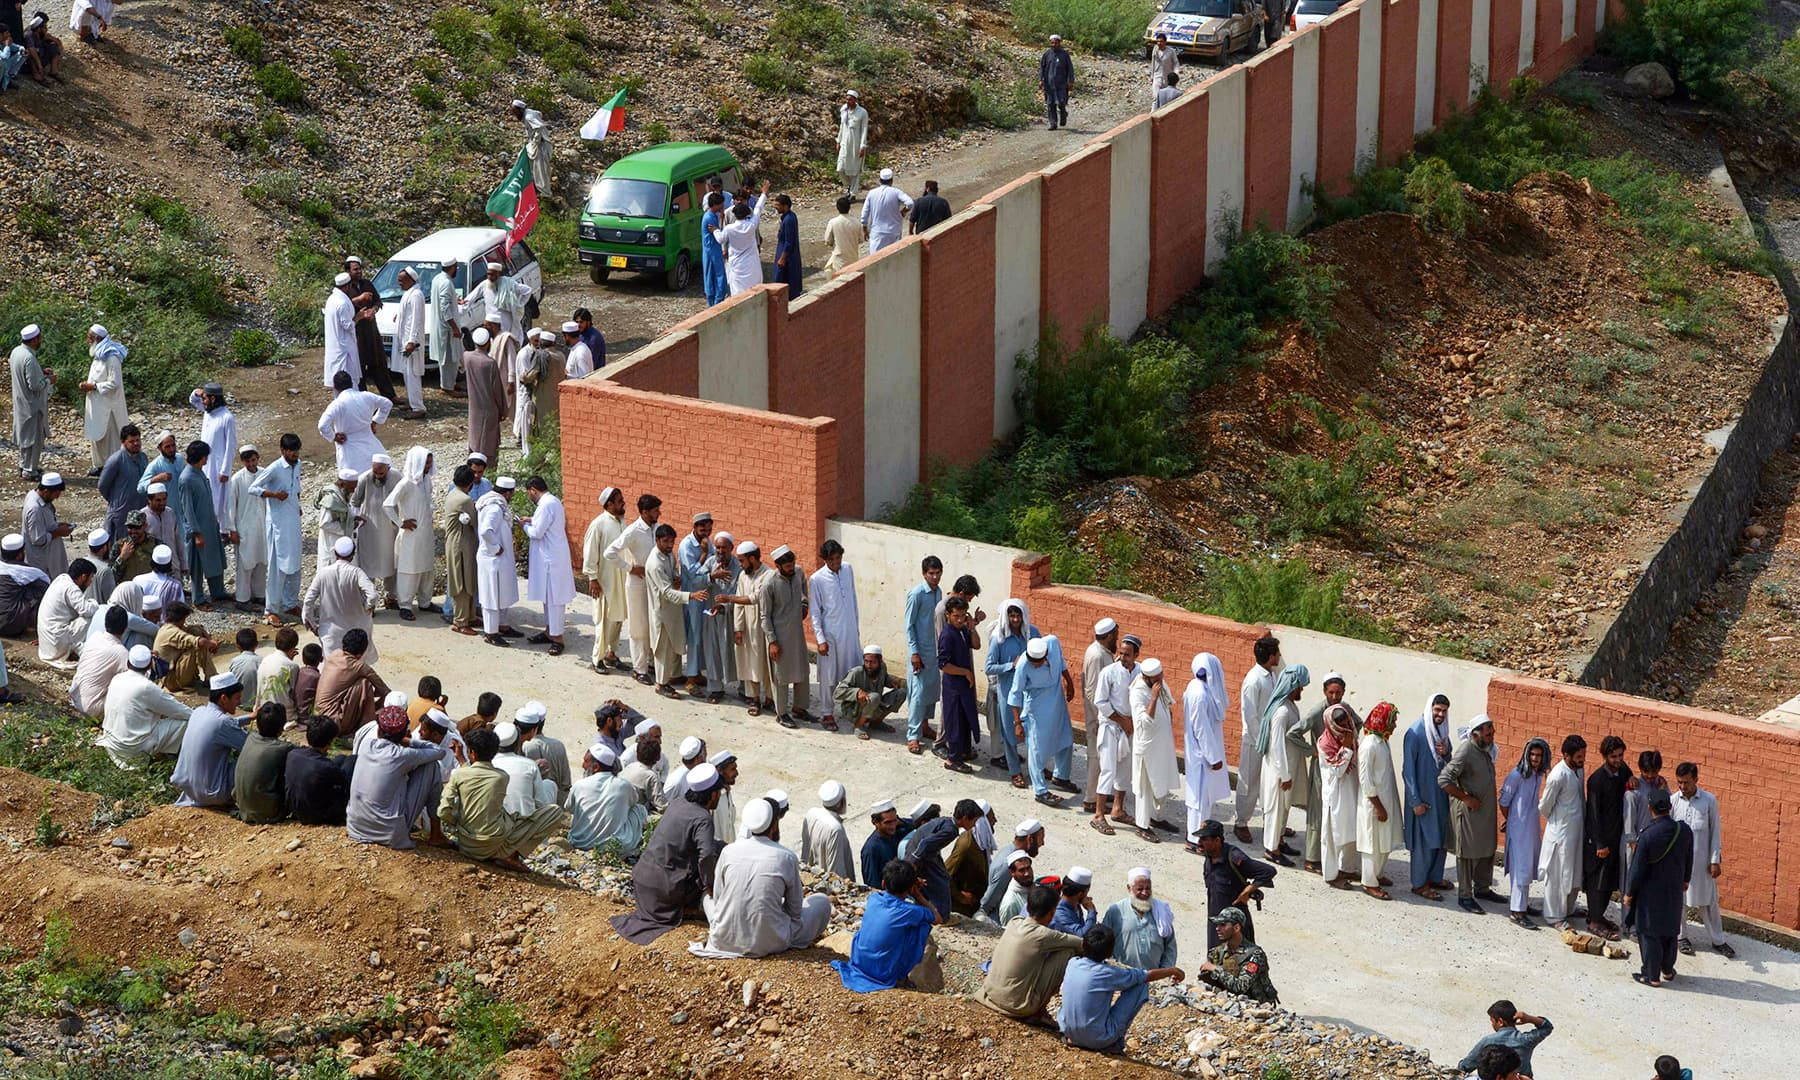 Tribesmen seen queued up to cast their vote outside a polling station for the first provincial elections in Jamrud. — AFP